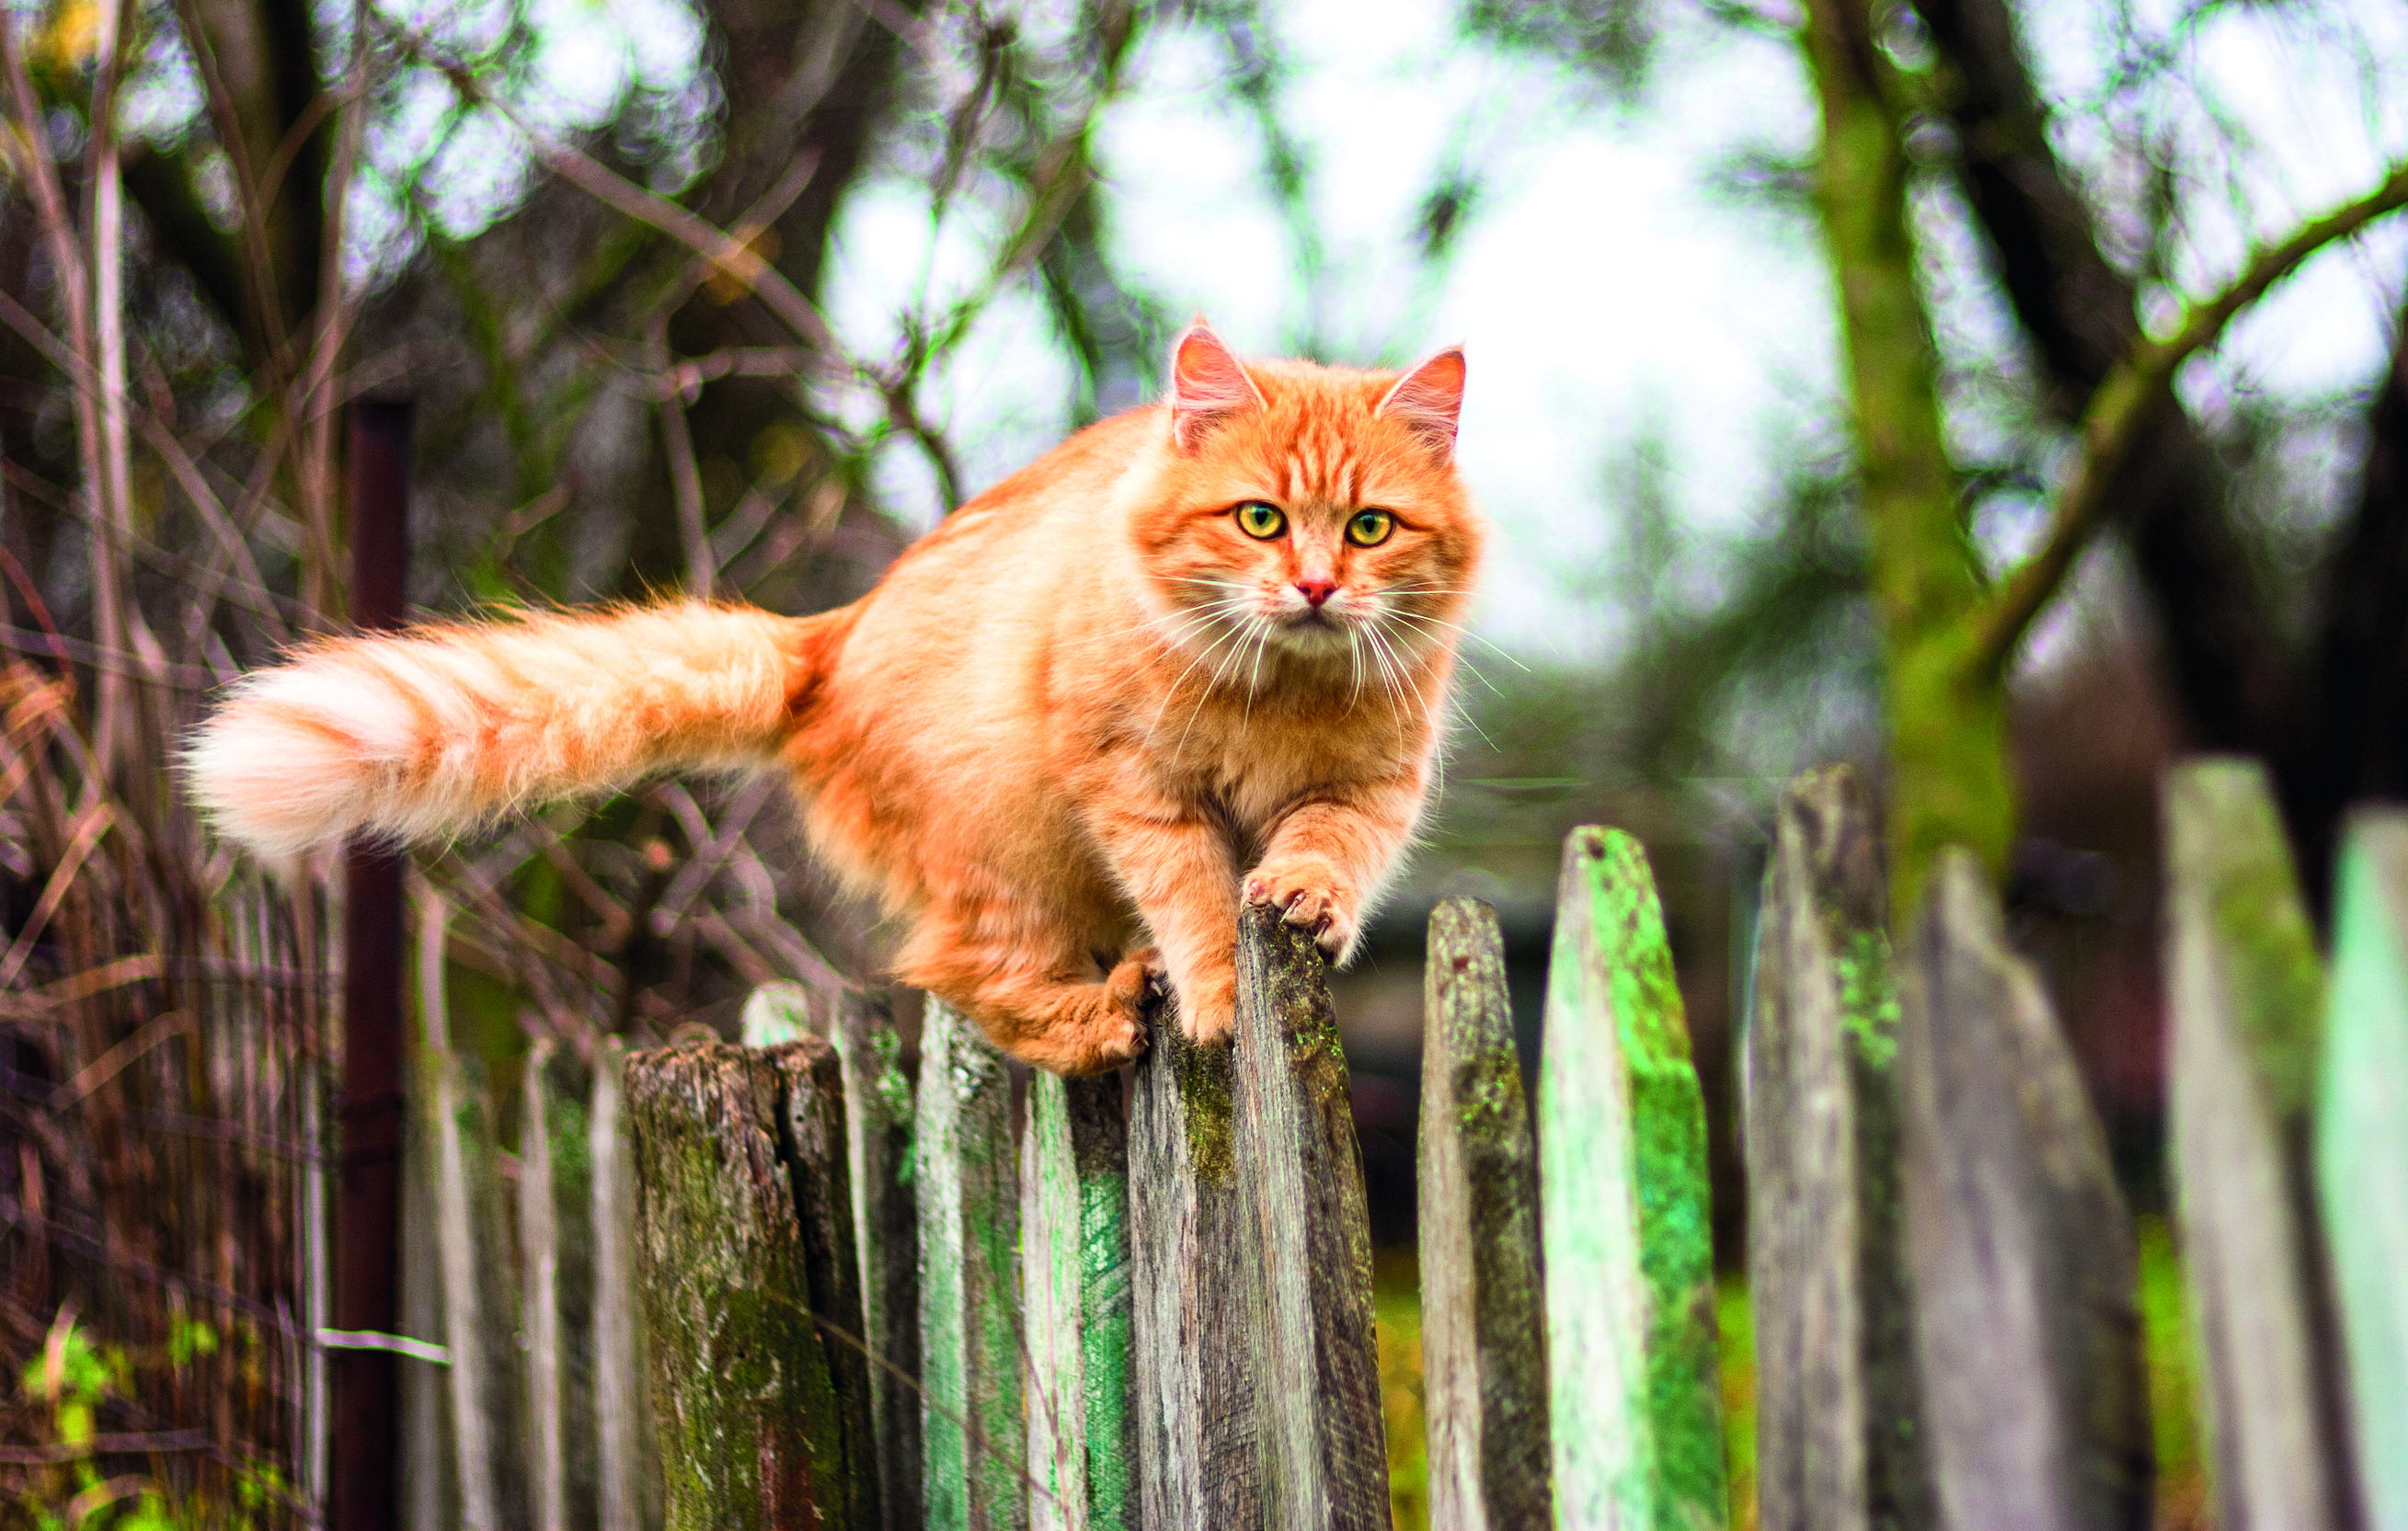 8 THINGS CATS DO REALLY WELL 8 THINGS CATS DO REALLY WELL shutterstock 229147372